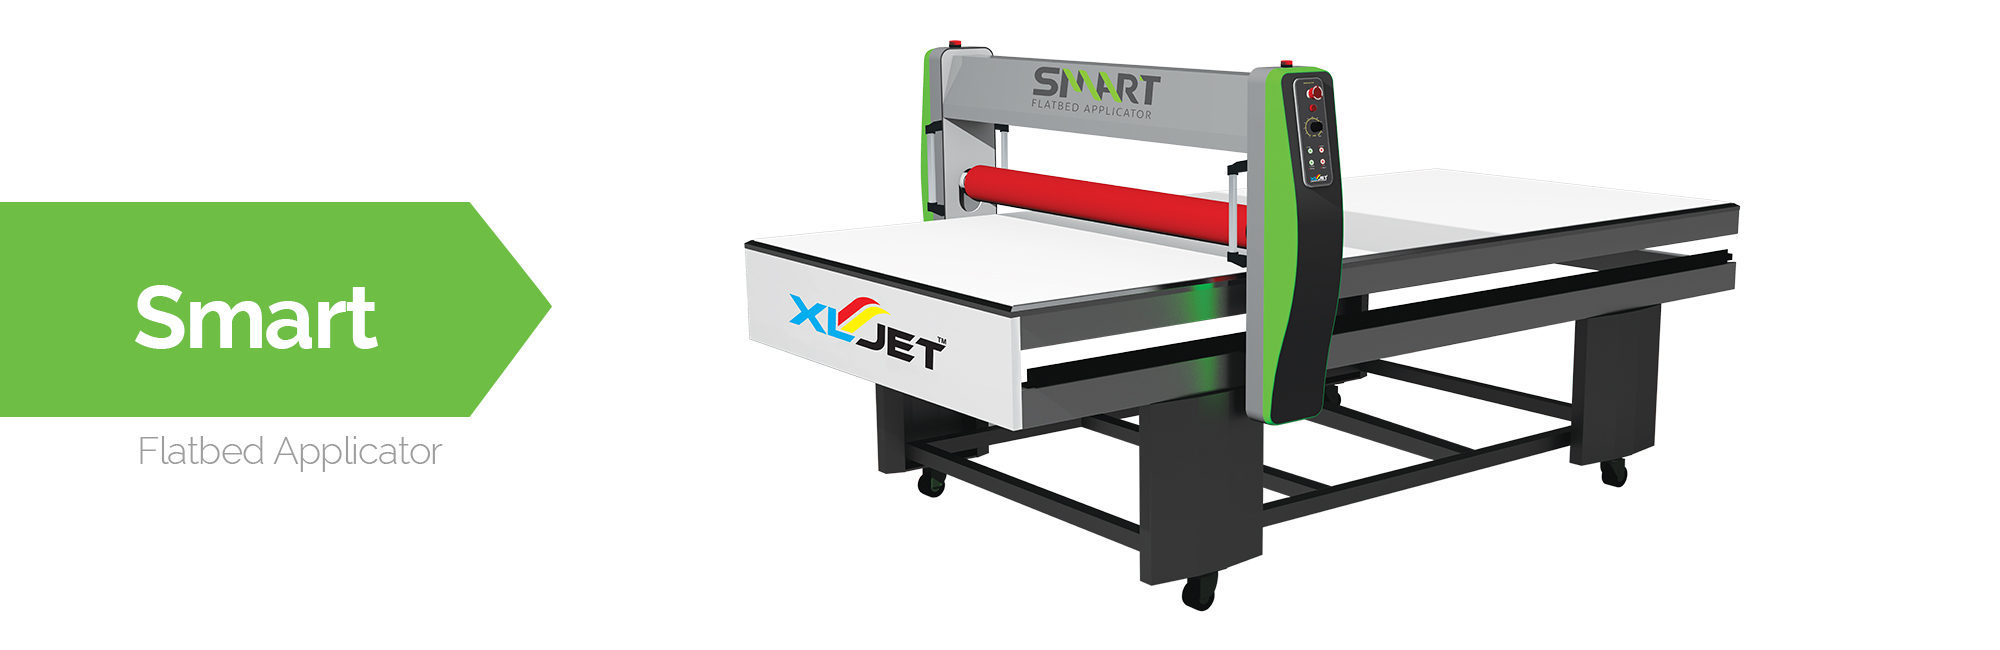 xljet lamination machine, b&r digitals, lamination machines